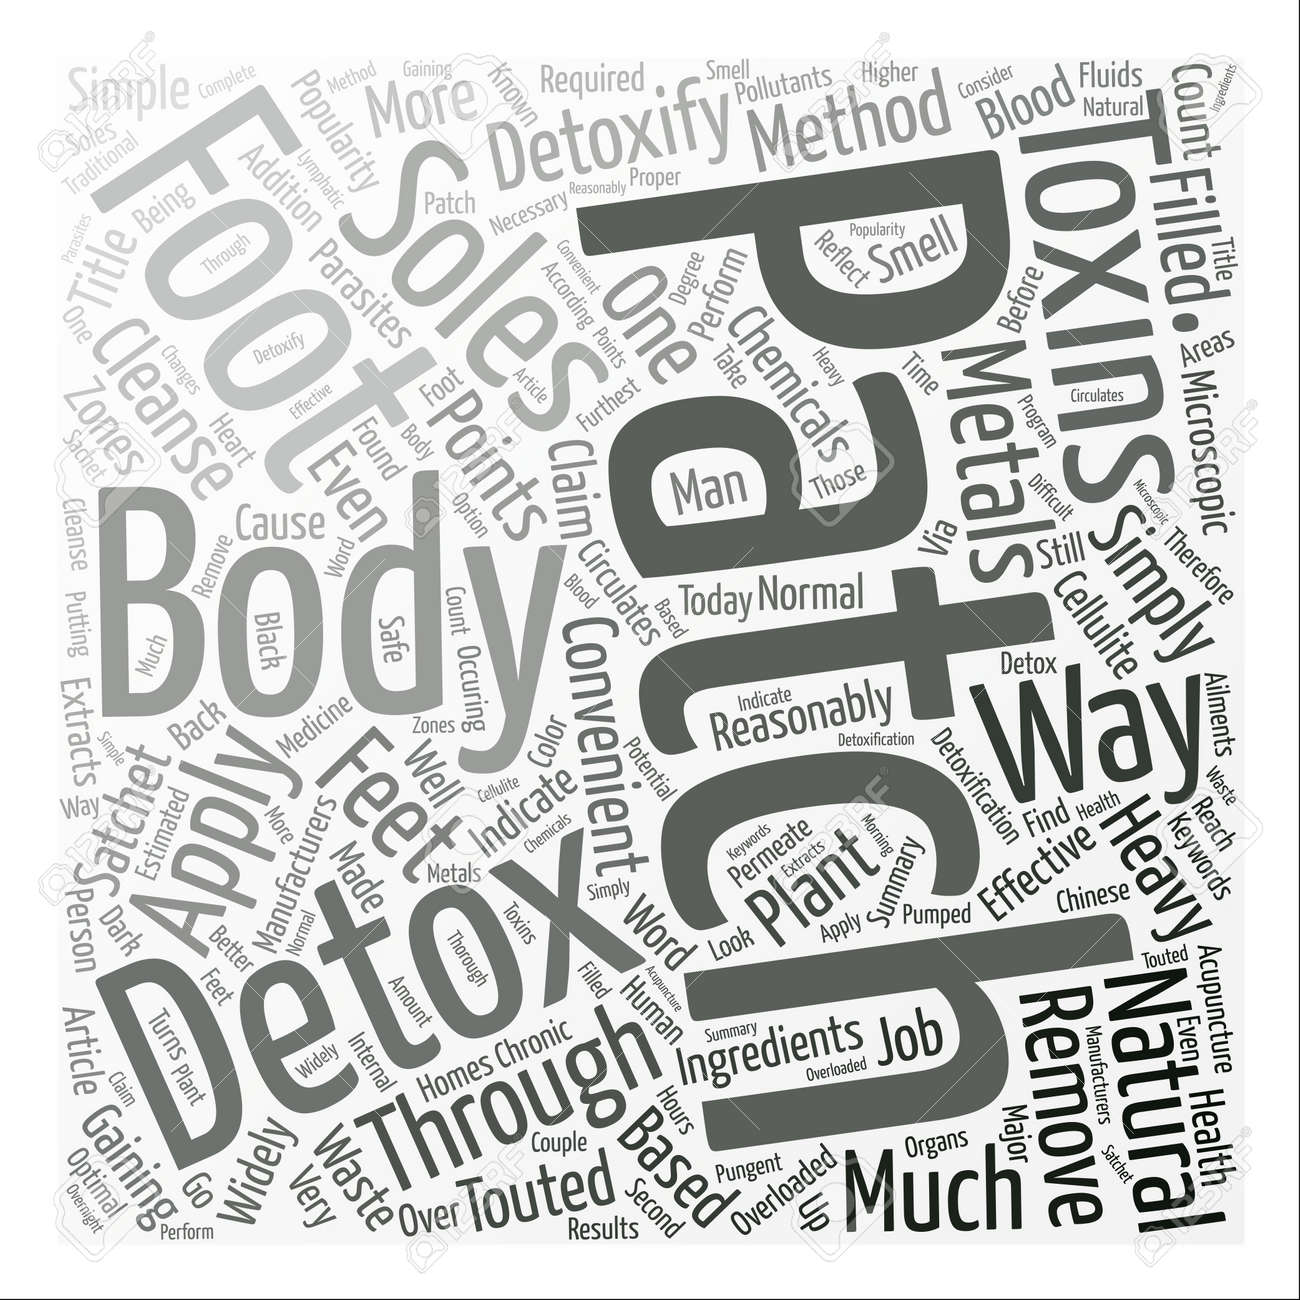 detoxify your body through a detox foot patch text background Ionic Foot Bath Machines detoxify your body through a detox foot patch text background word cloud concept stock vector